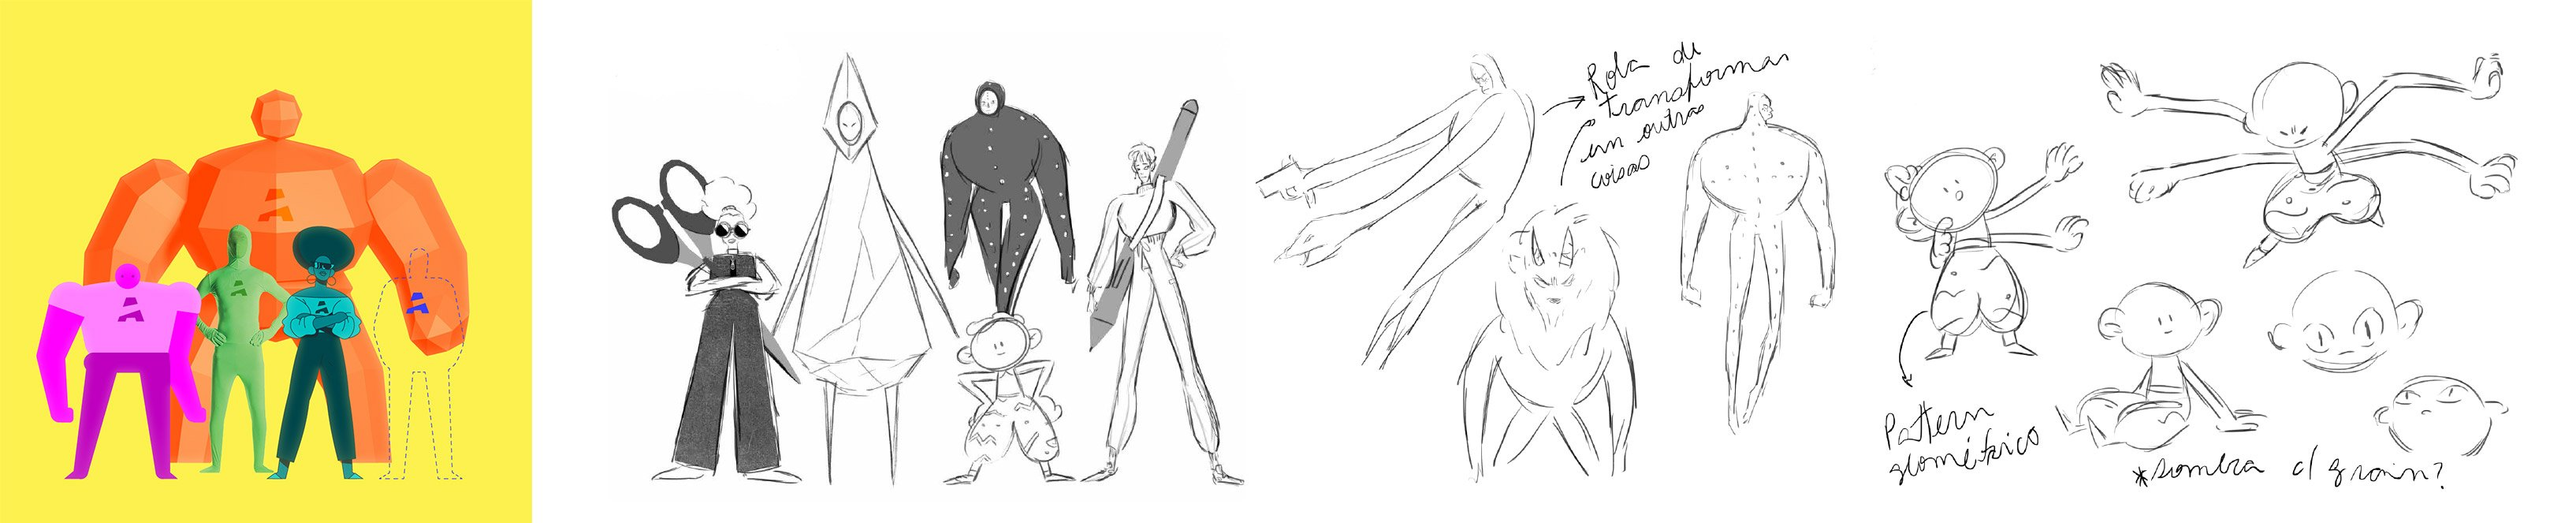 character-sketches